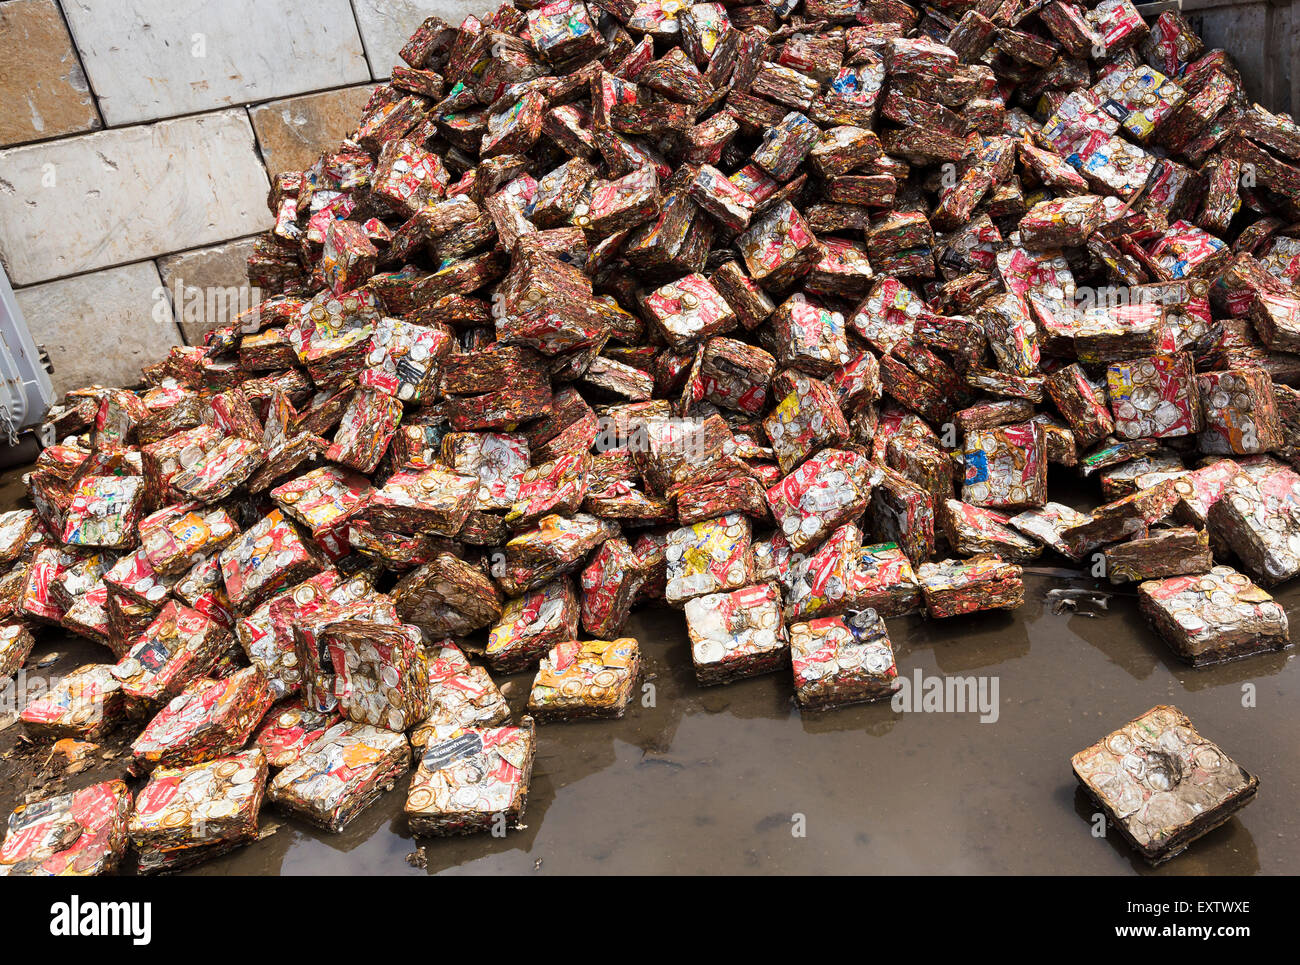 Recycling yard in Hamburg, pressed beverage cans - Stock Image